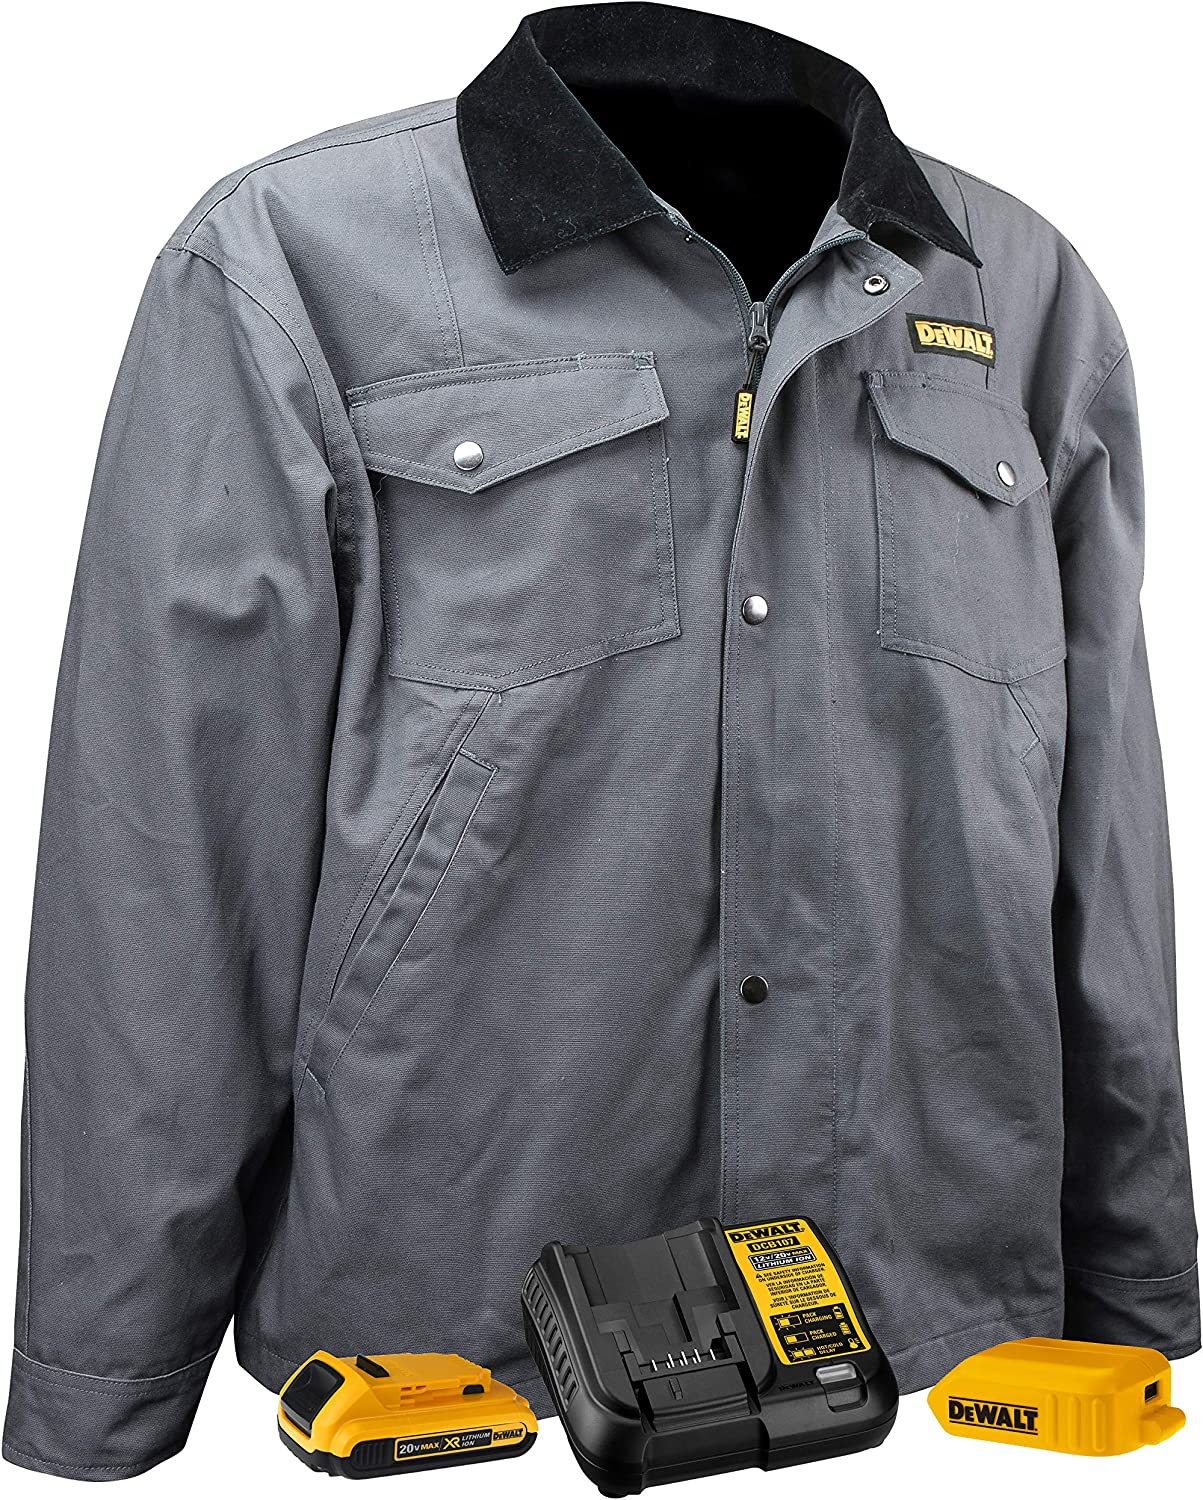 DEWALT DCHJ083 High quality new Heated Quality inspection Barn Coat Kit and 2.0Ah with Charg Battery